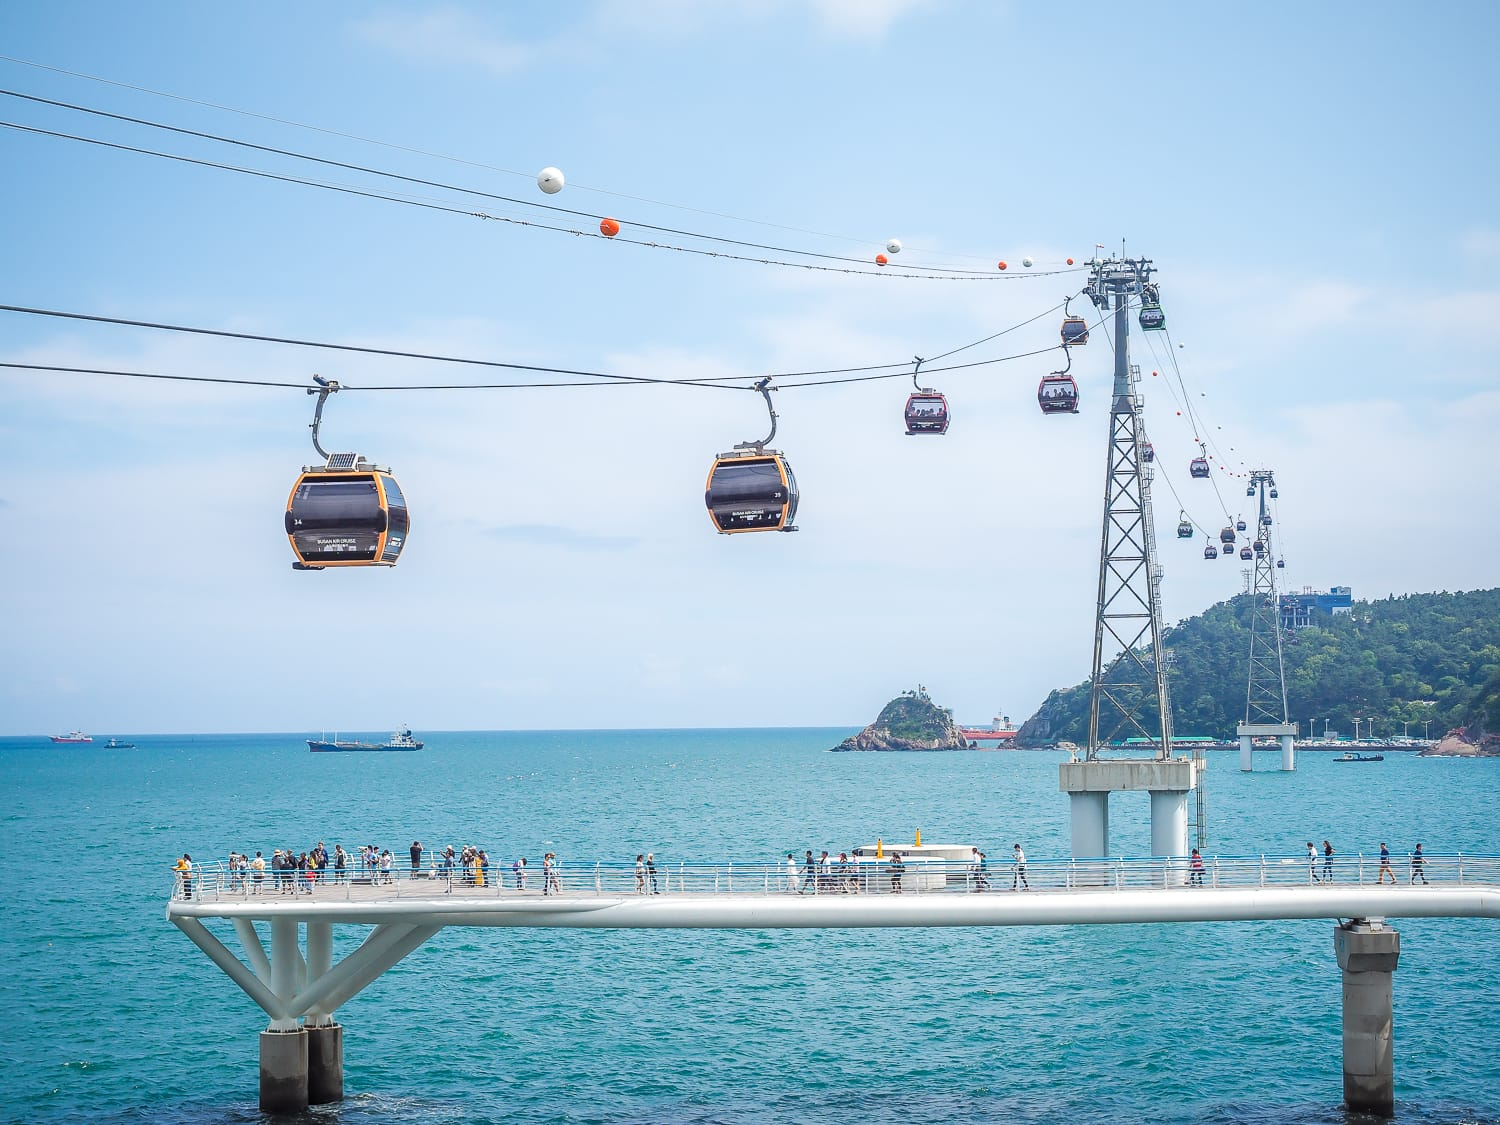 Songo Cable Cloud Walkway in Busan, South Korea